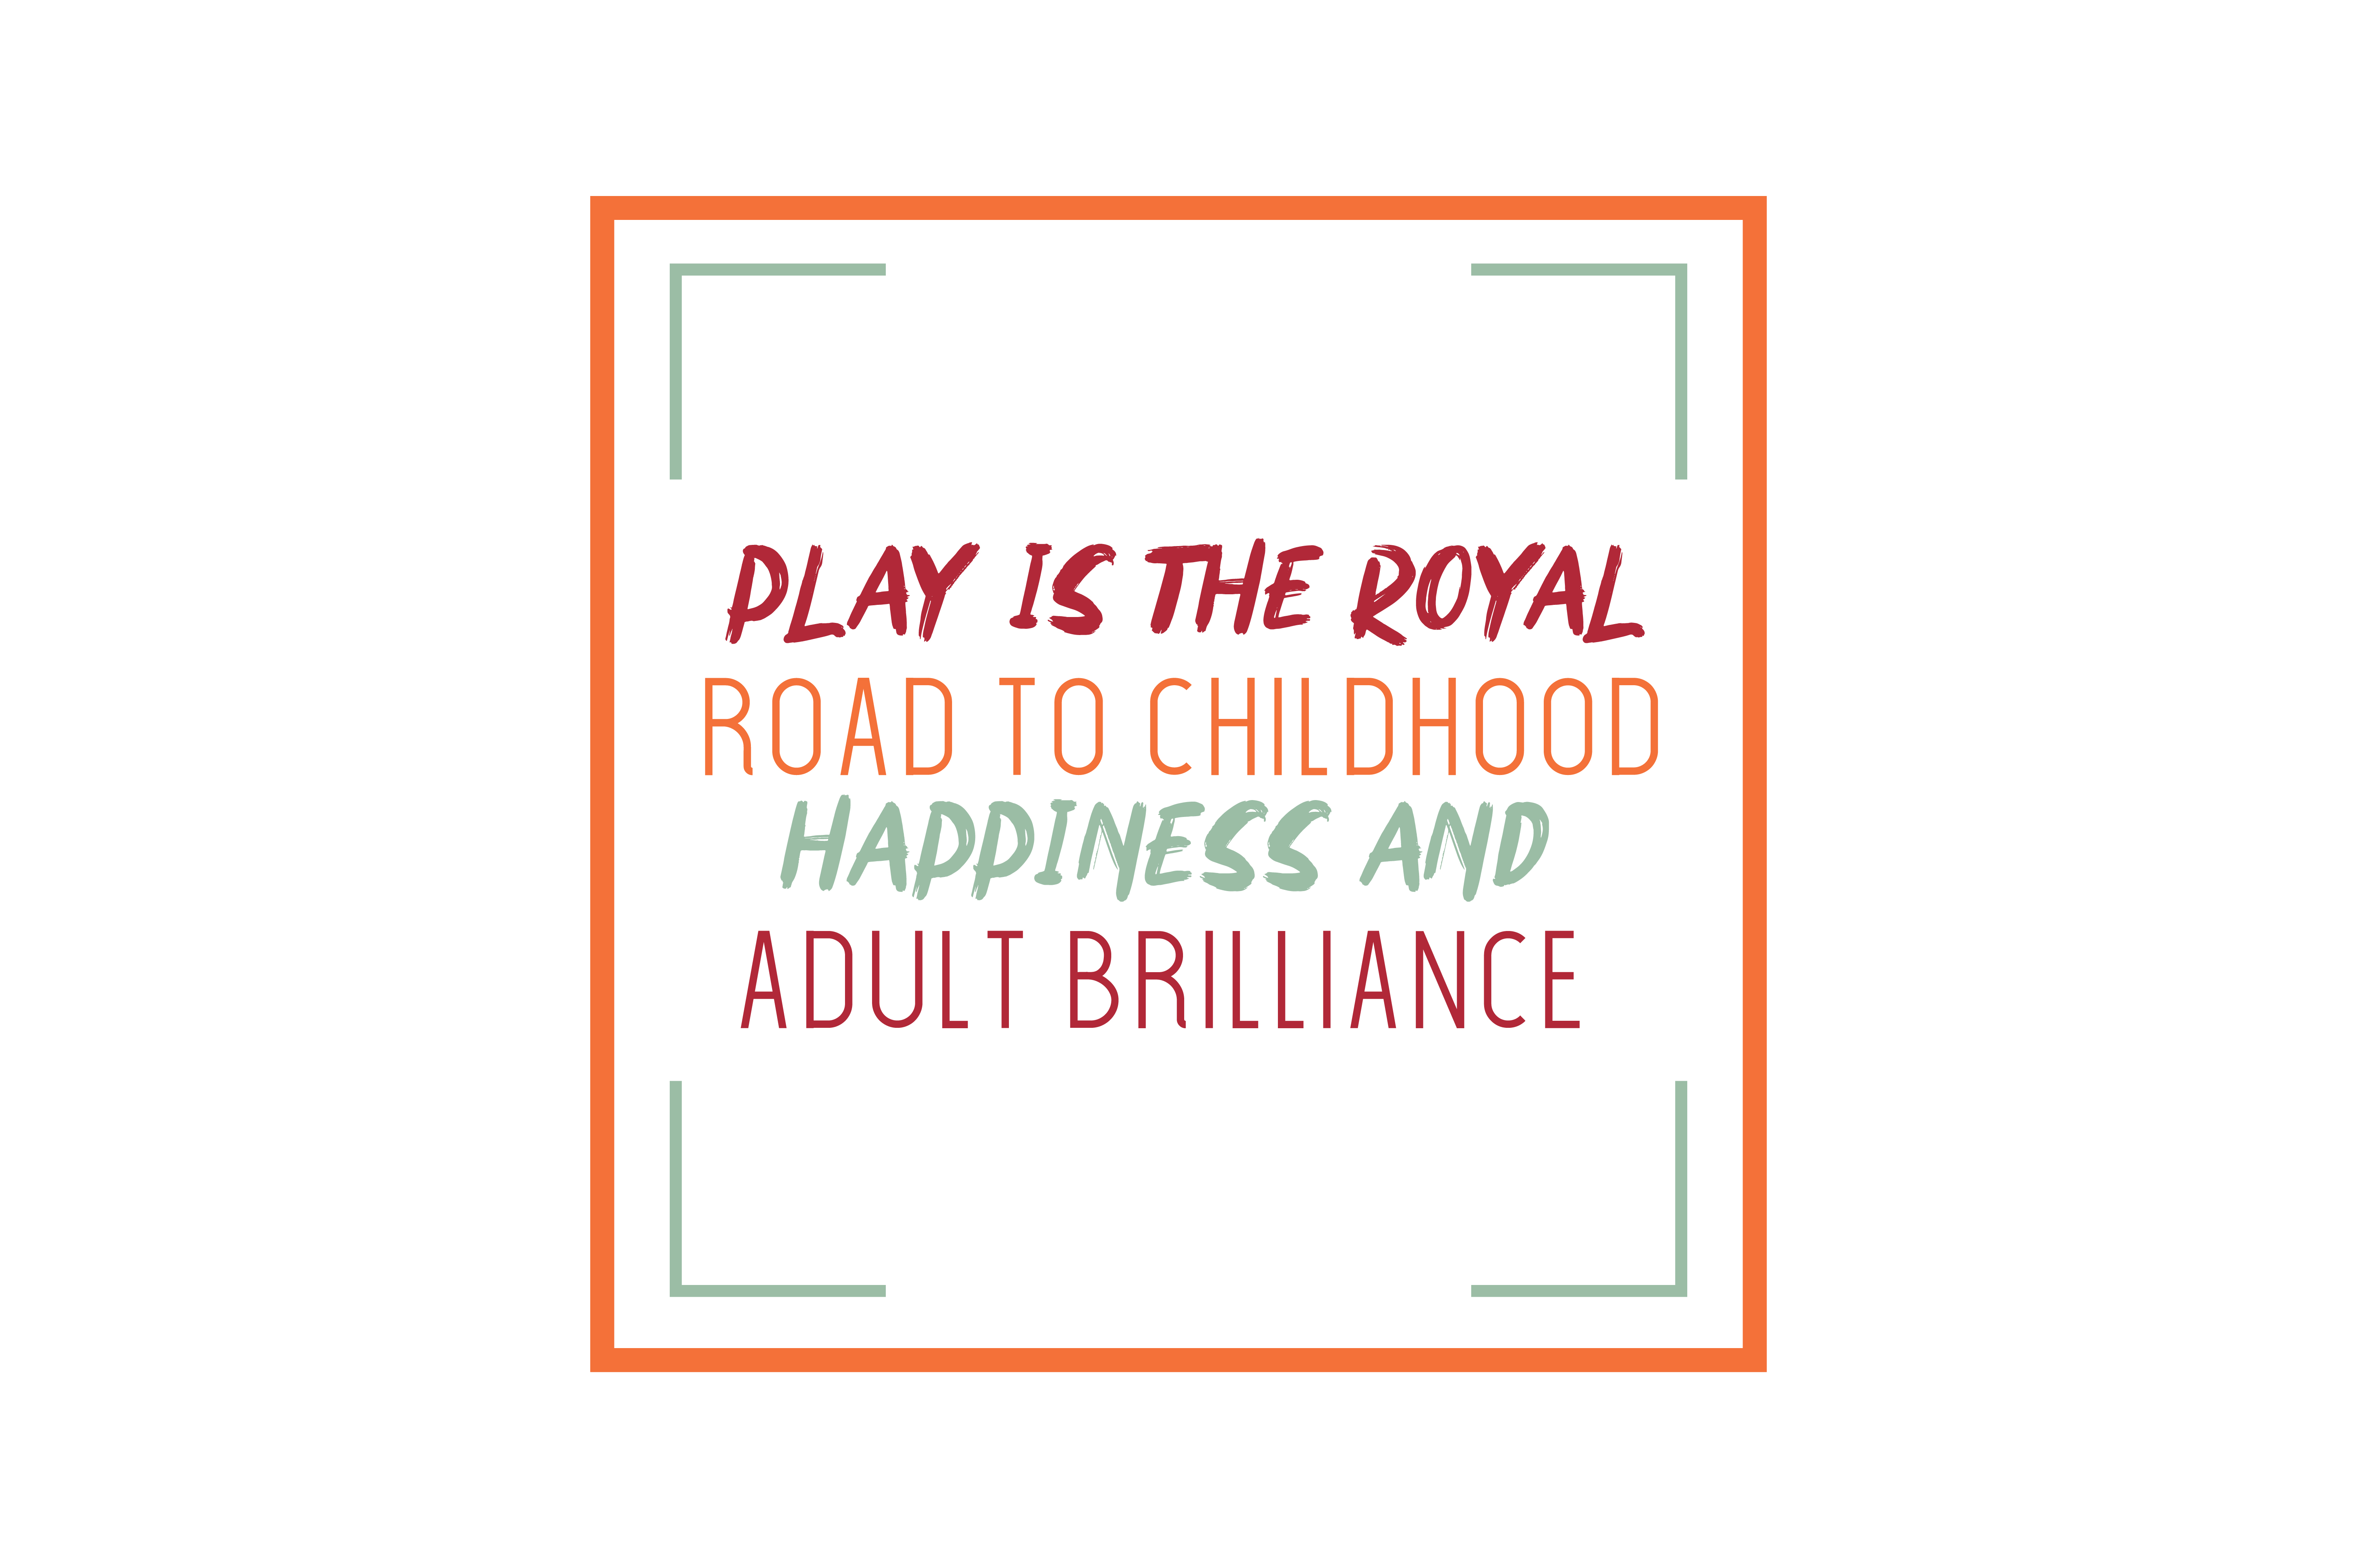 Download Free Play Is The Royal Road To Childhood Happiness And Adult Brilliance for Cricut Explore, Silhouette and other cutting machines.